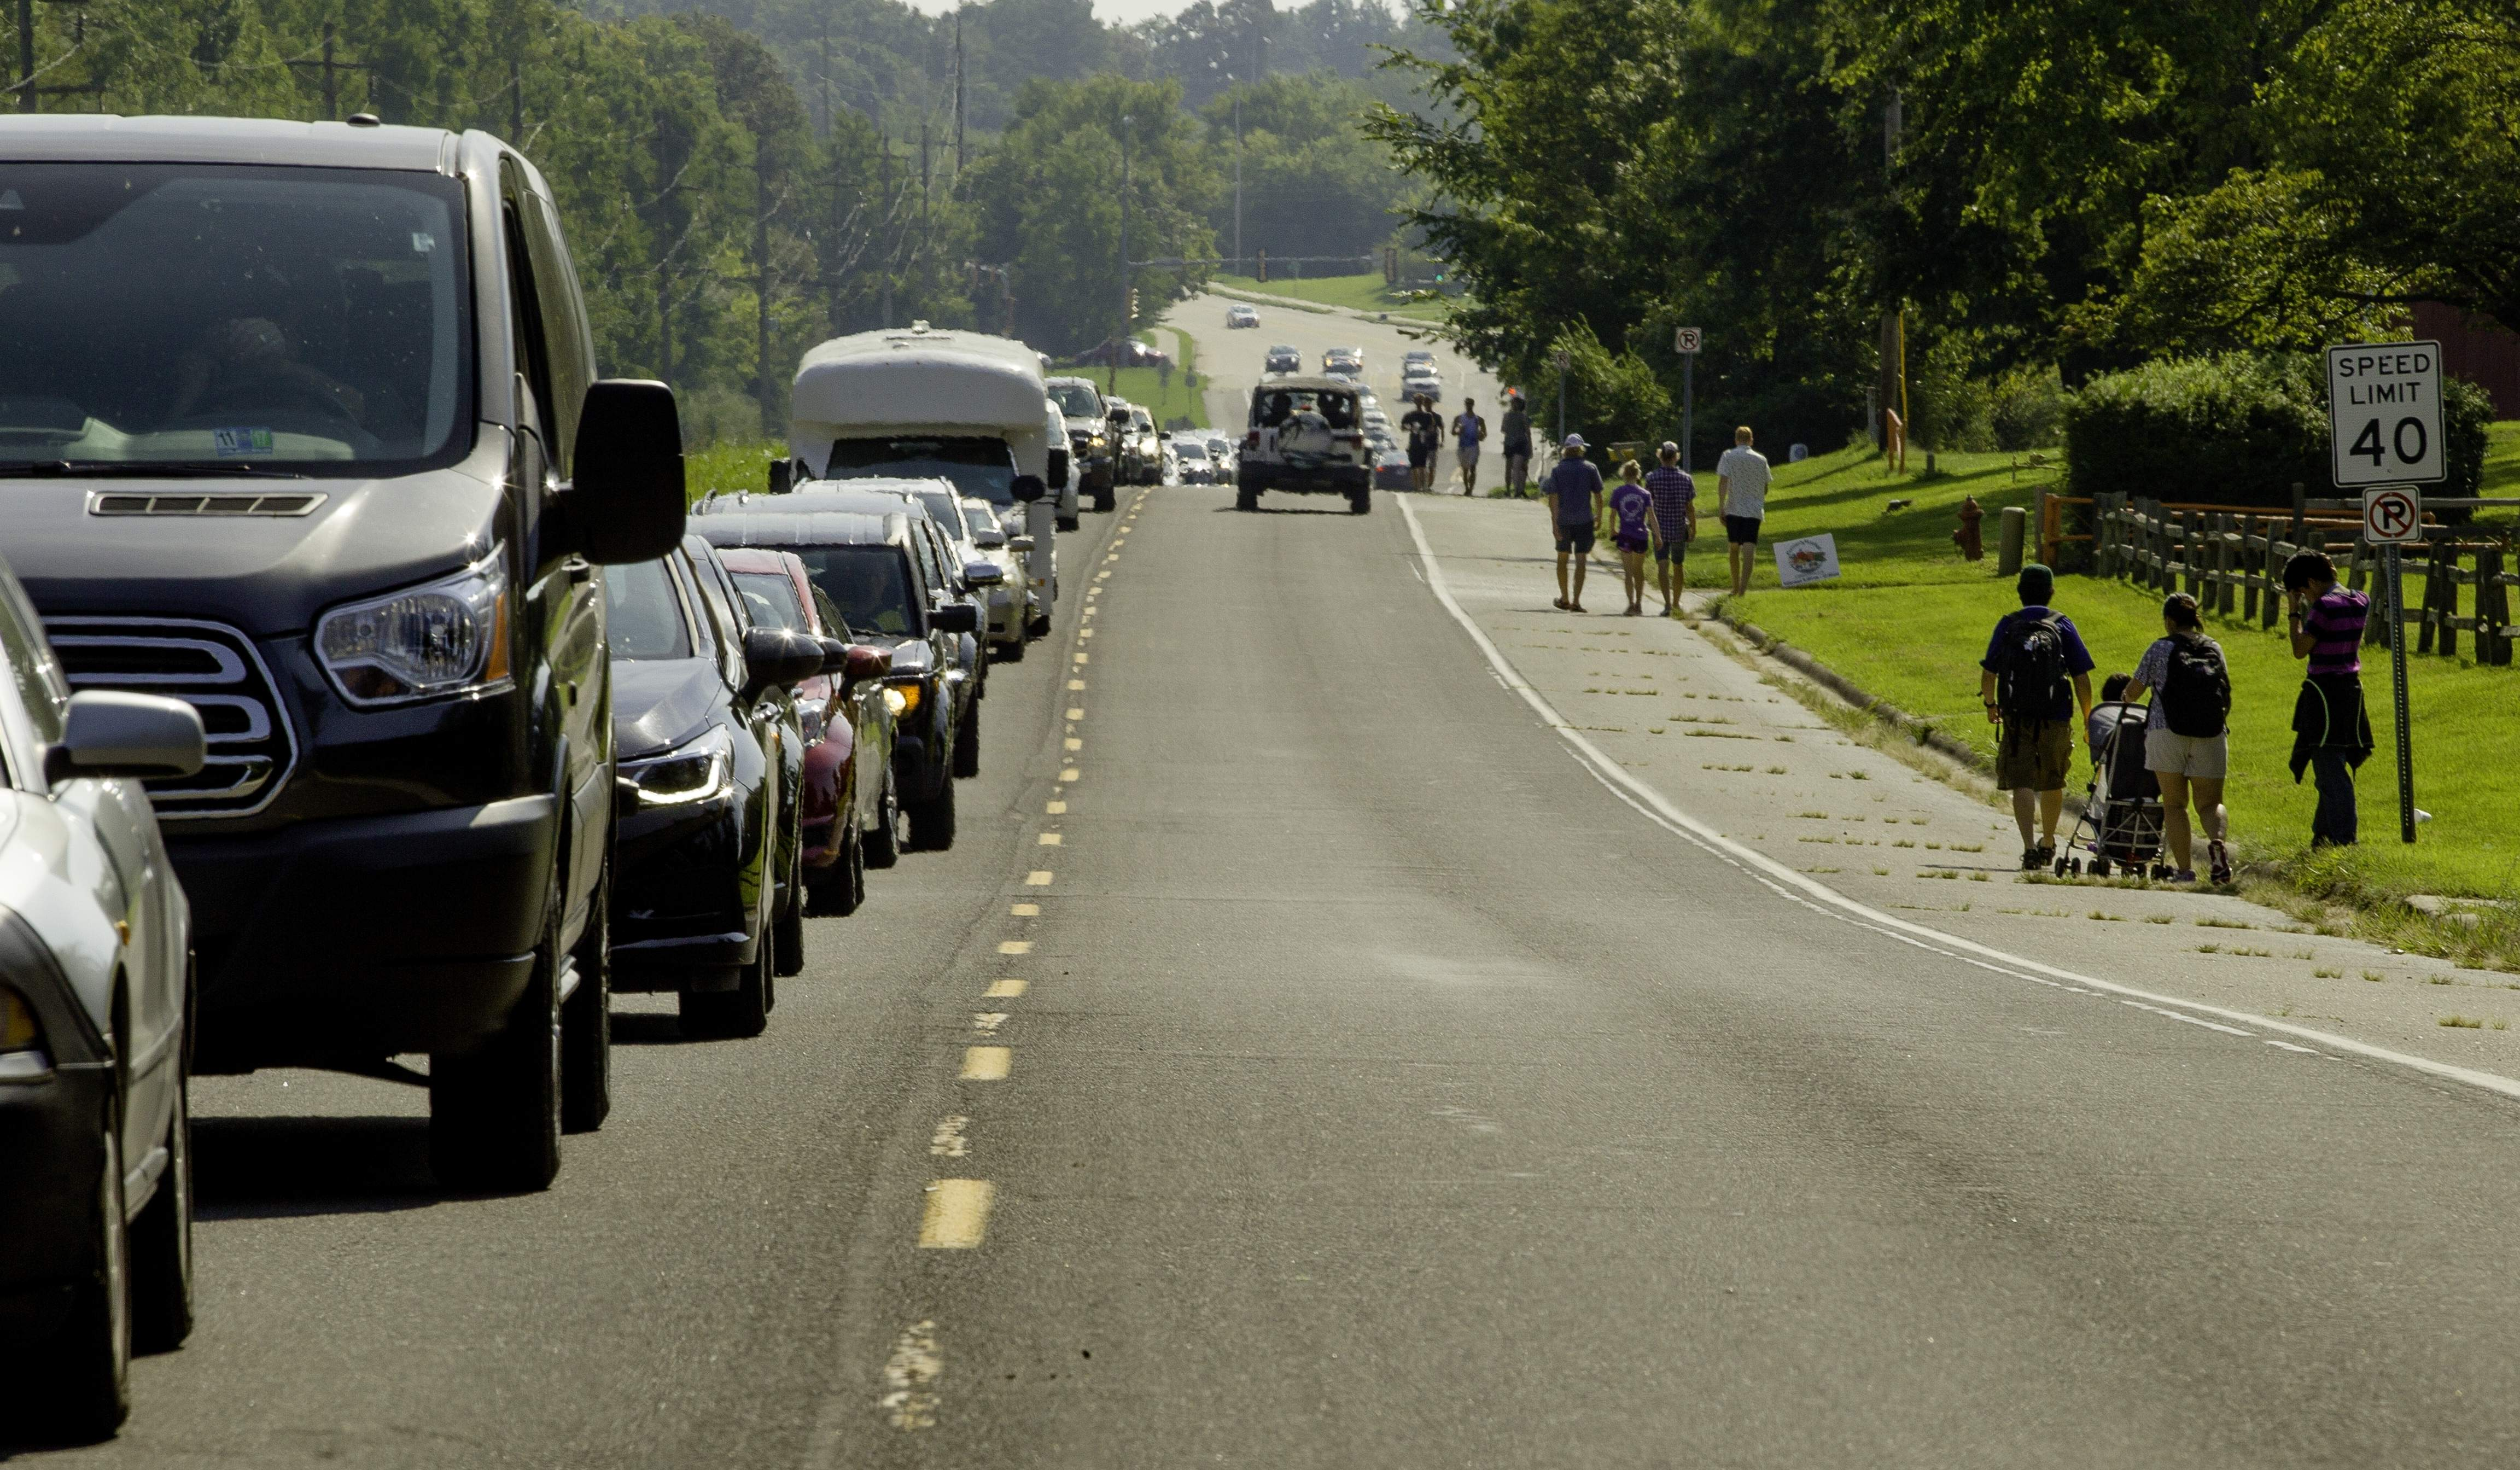 Traffic slows down on Pleasant Hill Road in Carbondale as people arrive to view the total solar eclipse Monday, Aug. 21, 2017. [Ted Schurter/The State Journal-Register]